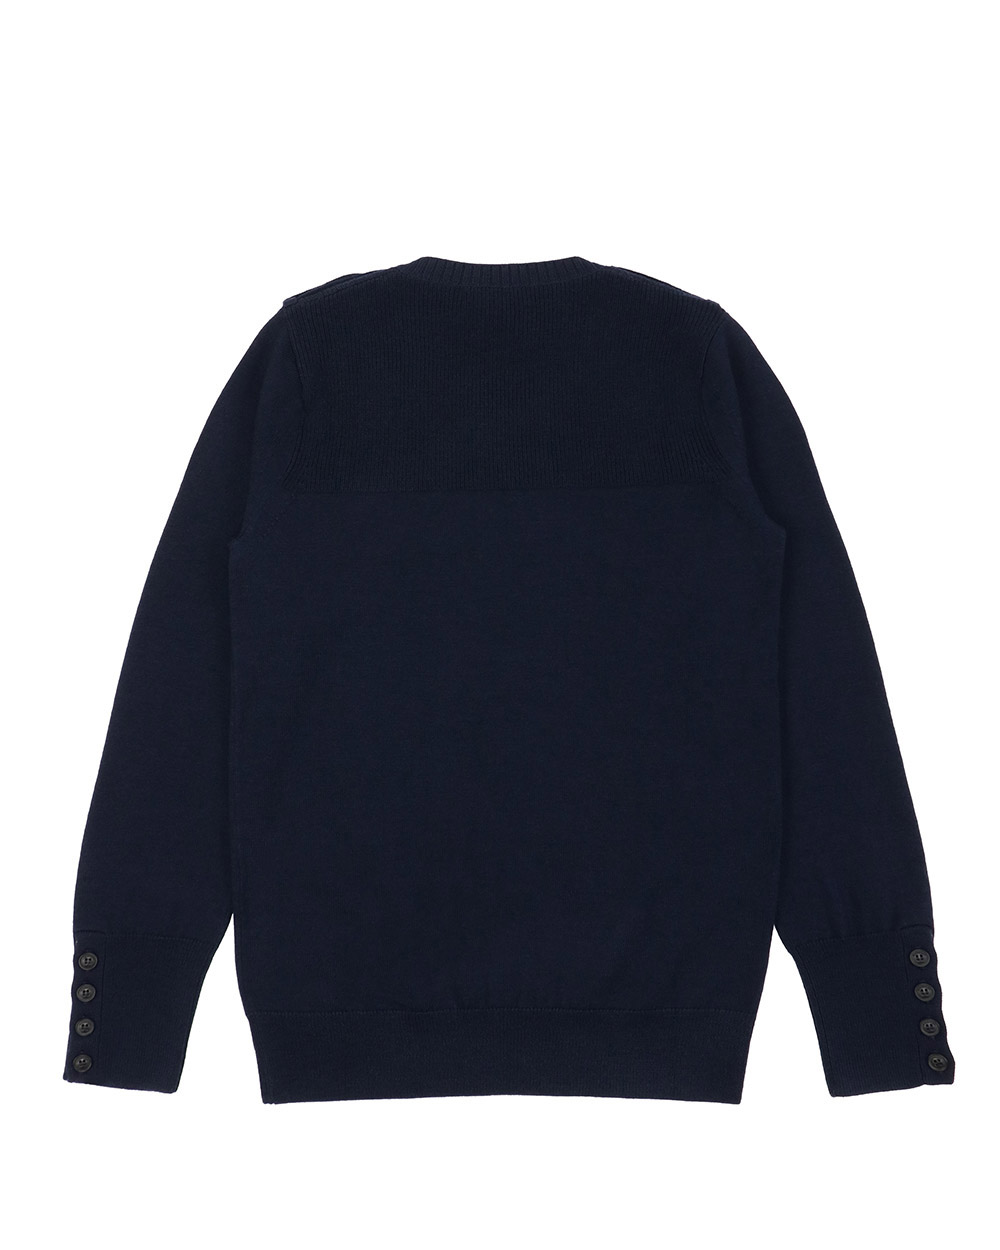 Round Neck Long Sleeves Sweater 1